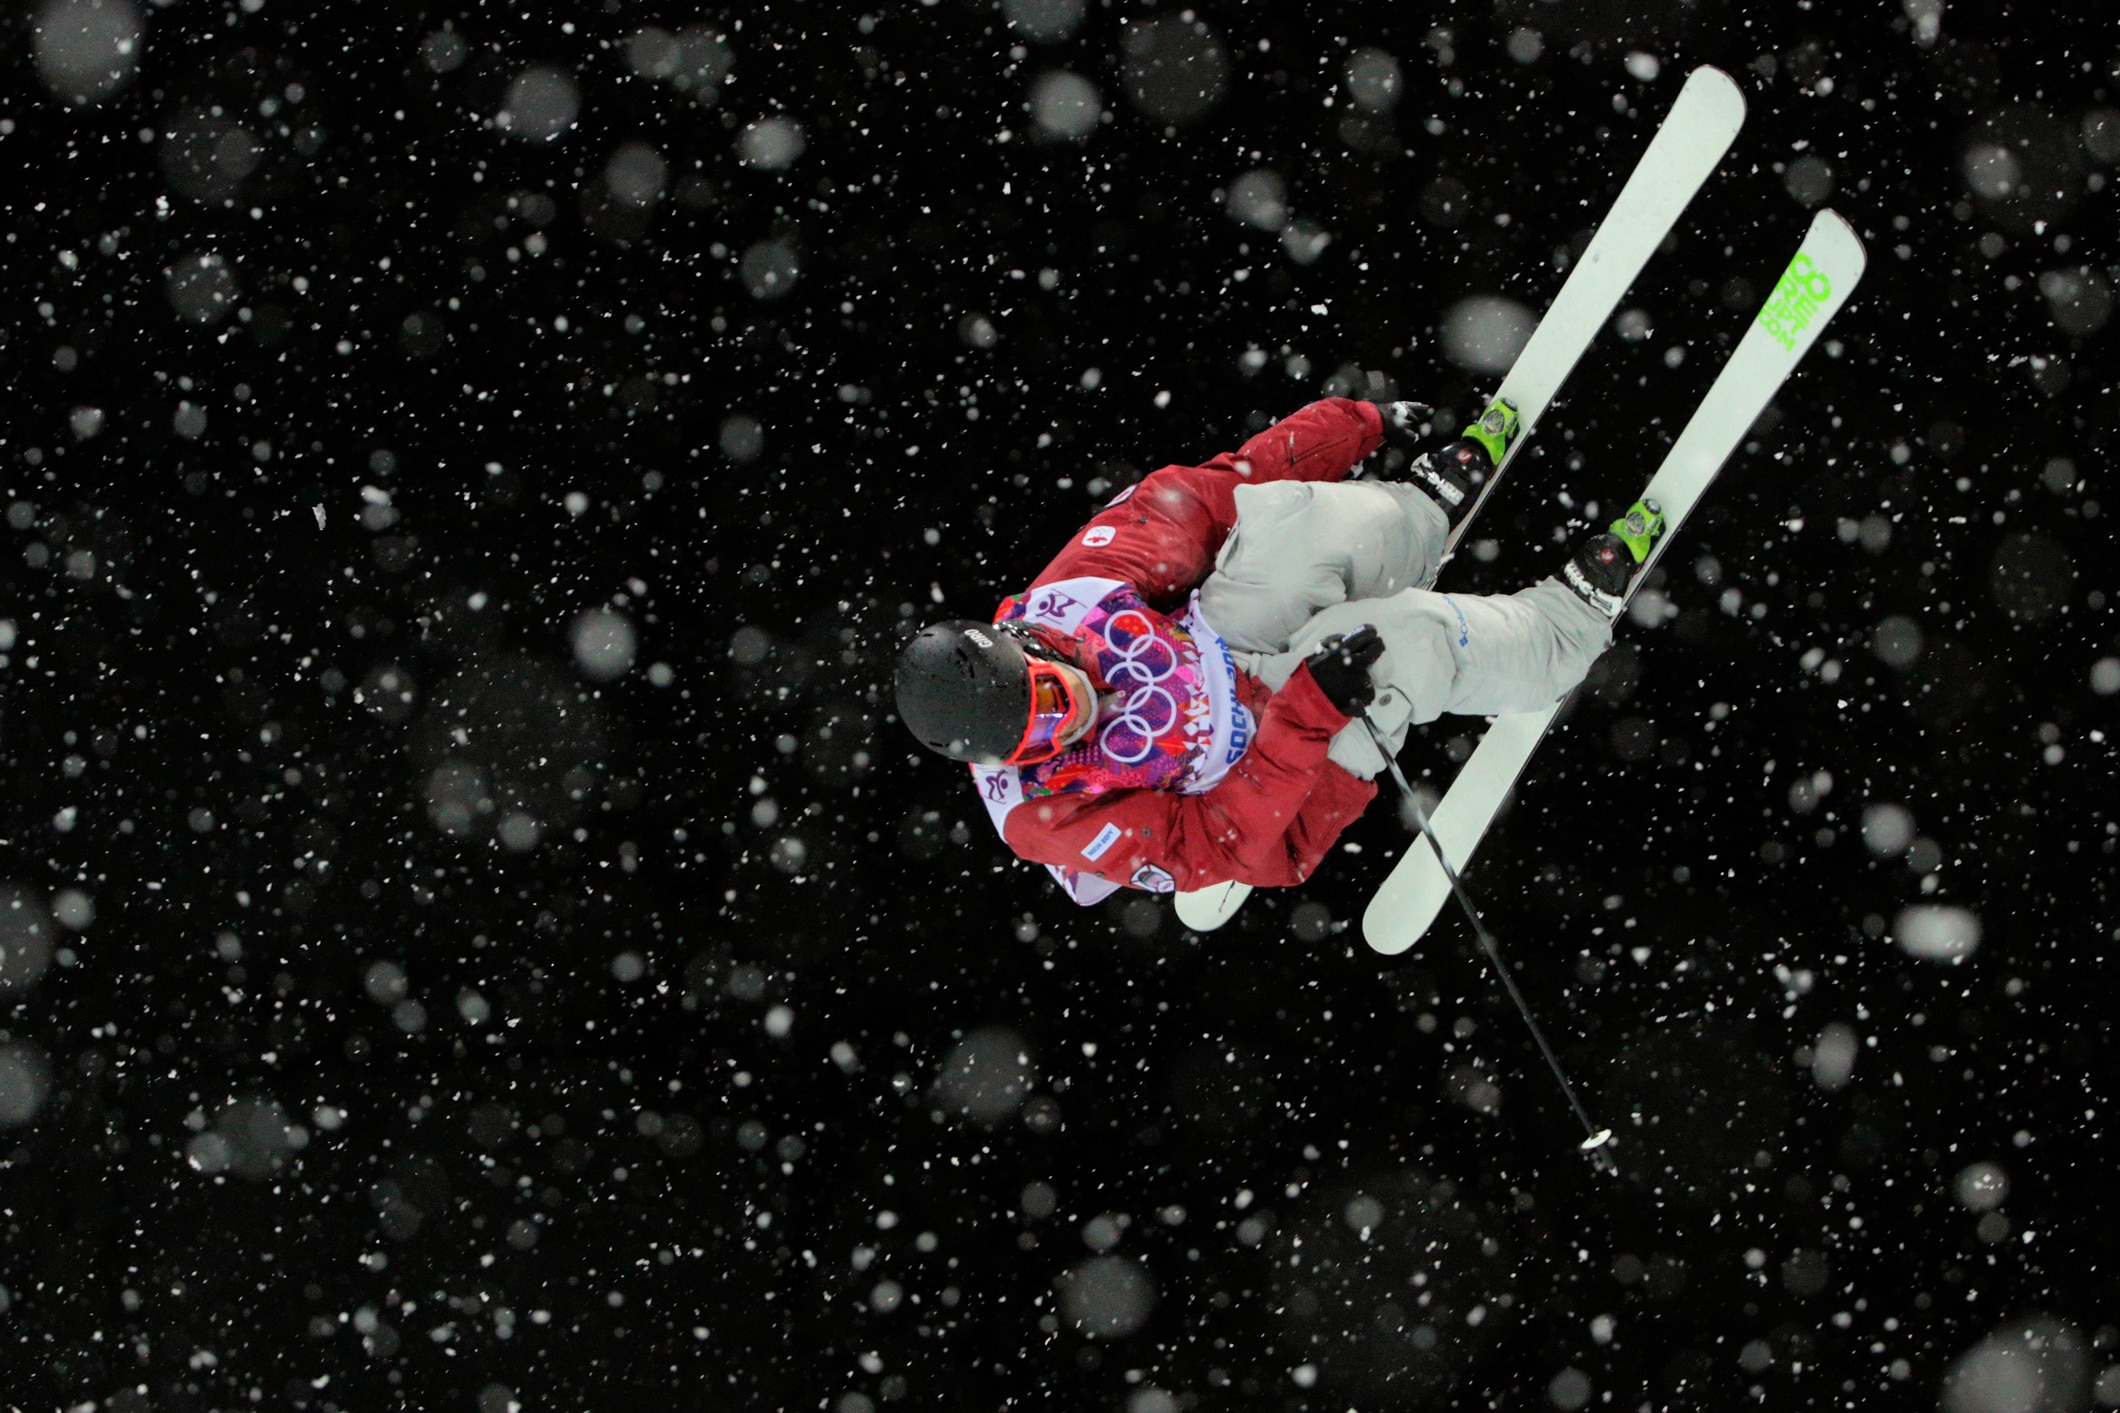 Freestyle Skiing at Sochi 2014